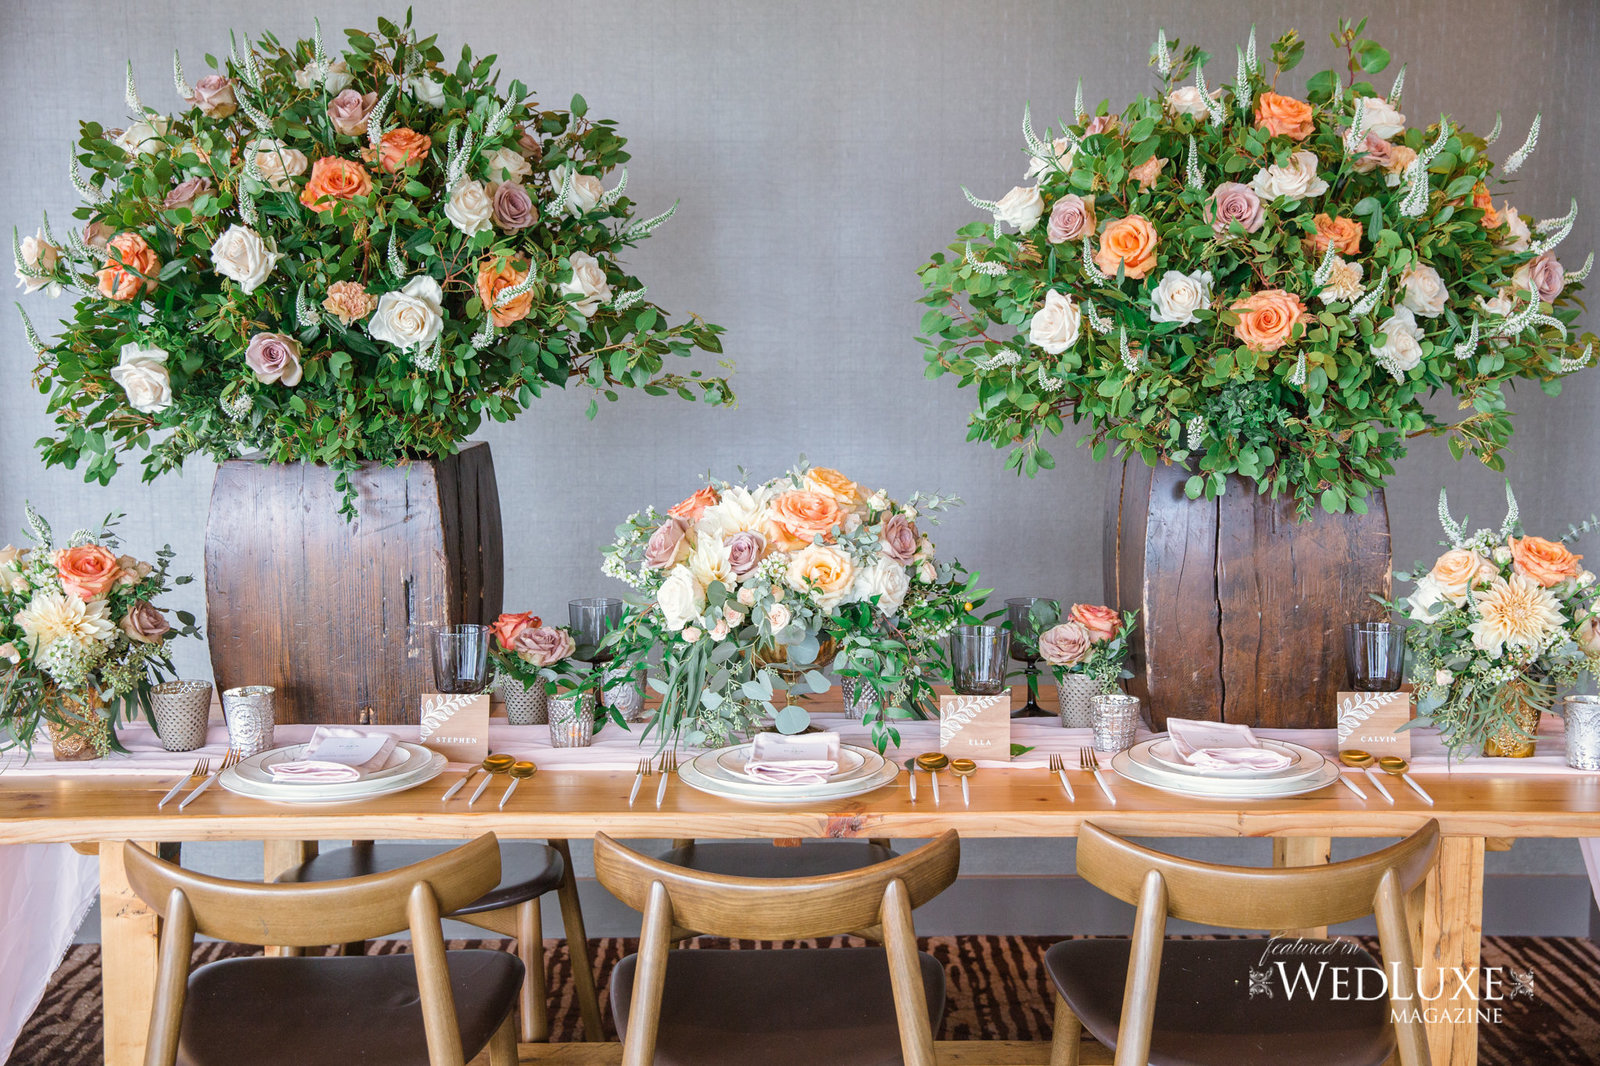 Styled Wedluxe Magazine Rustic Retreat  table setting